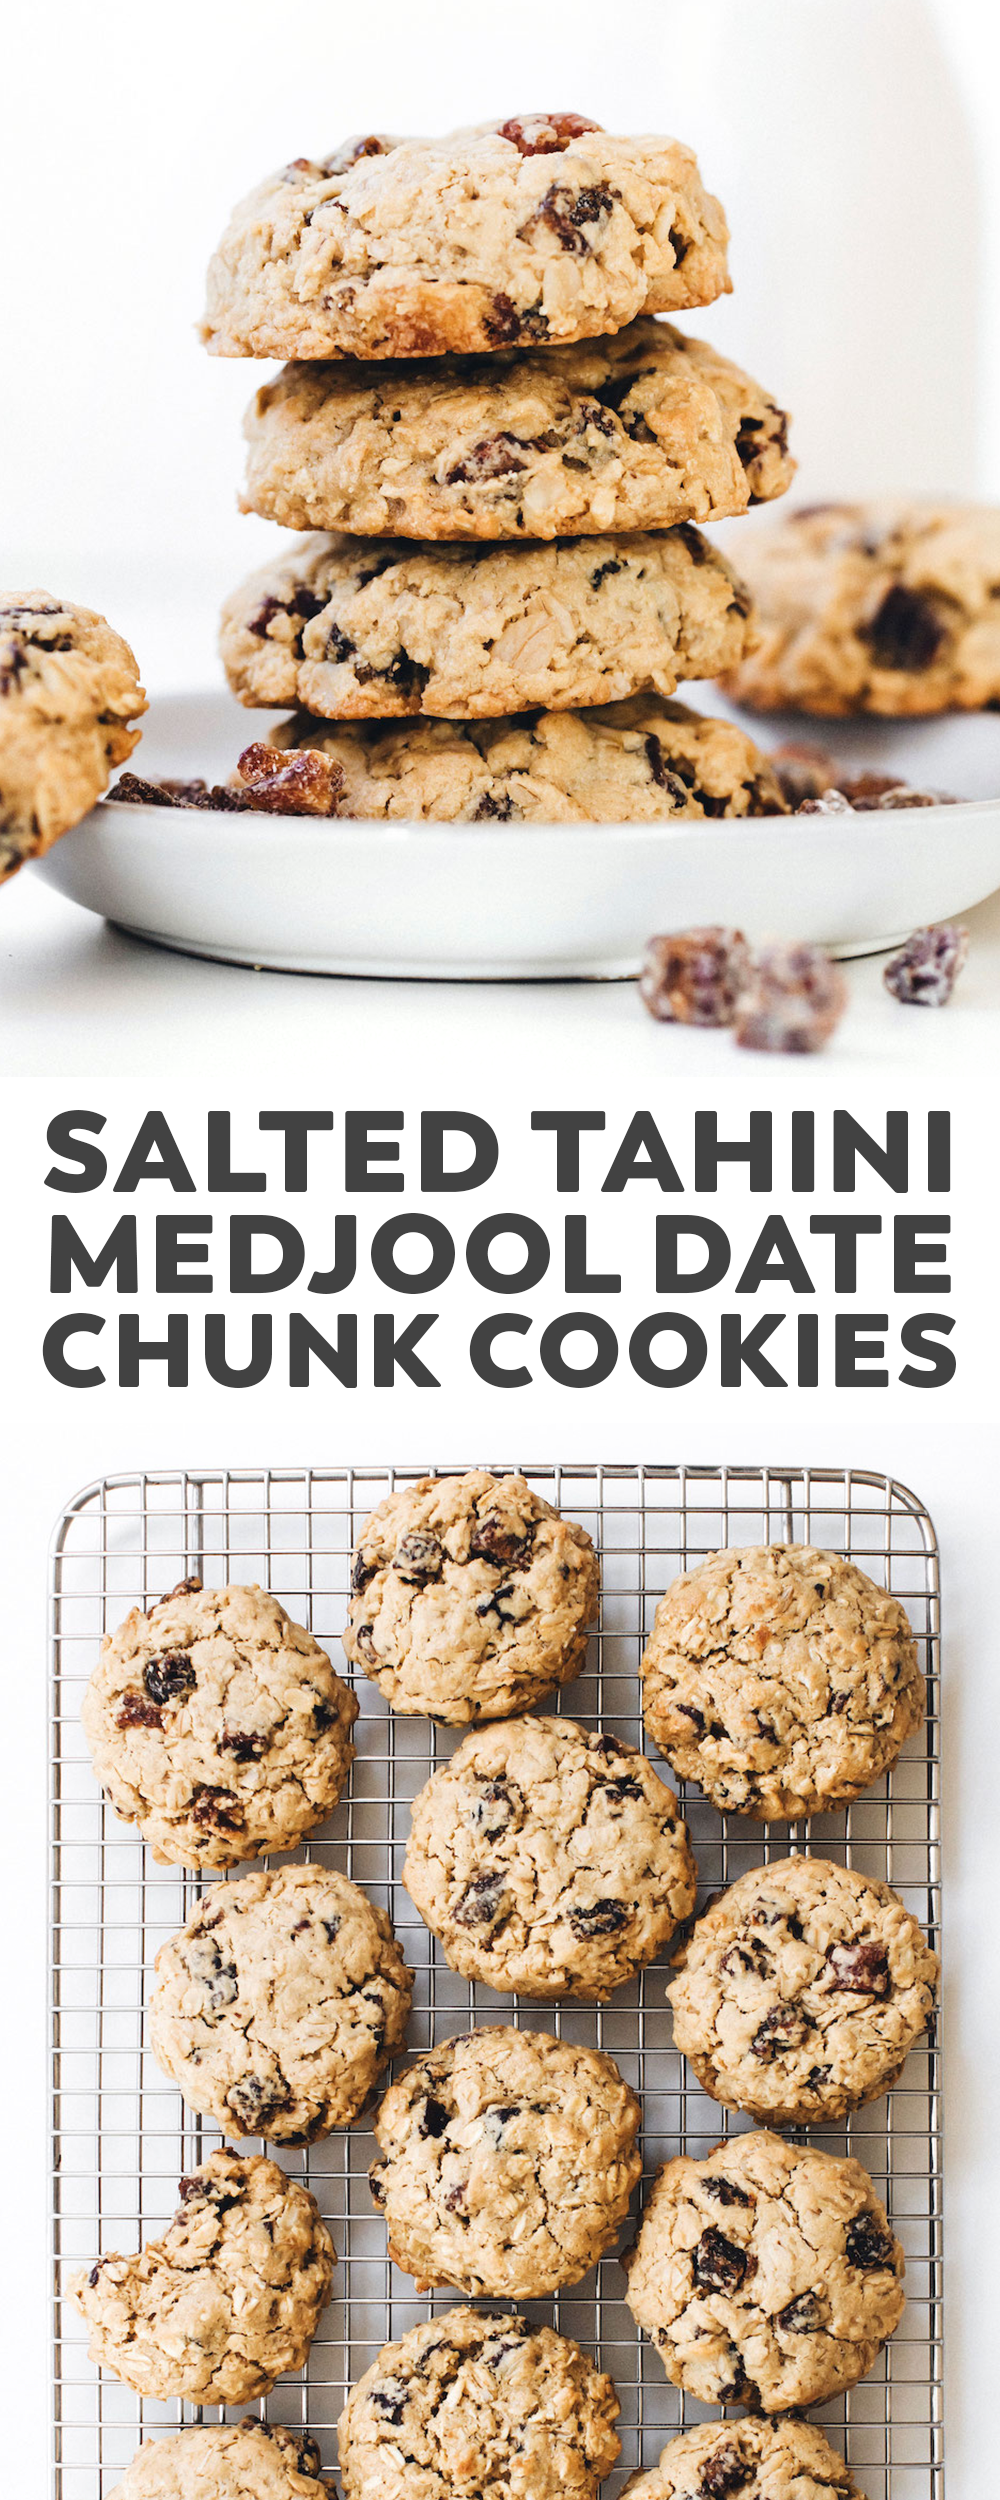 Tahini Medjool Date Chunk Cookies Vegan Gluten Free Vegan Cookies Fruit Recipes Soft Bakes